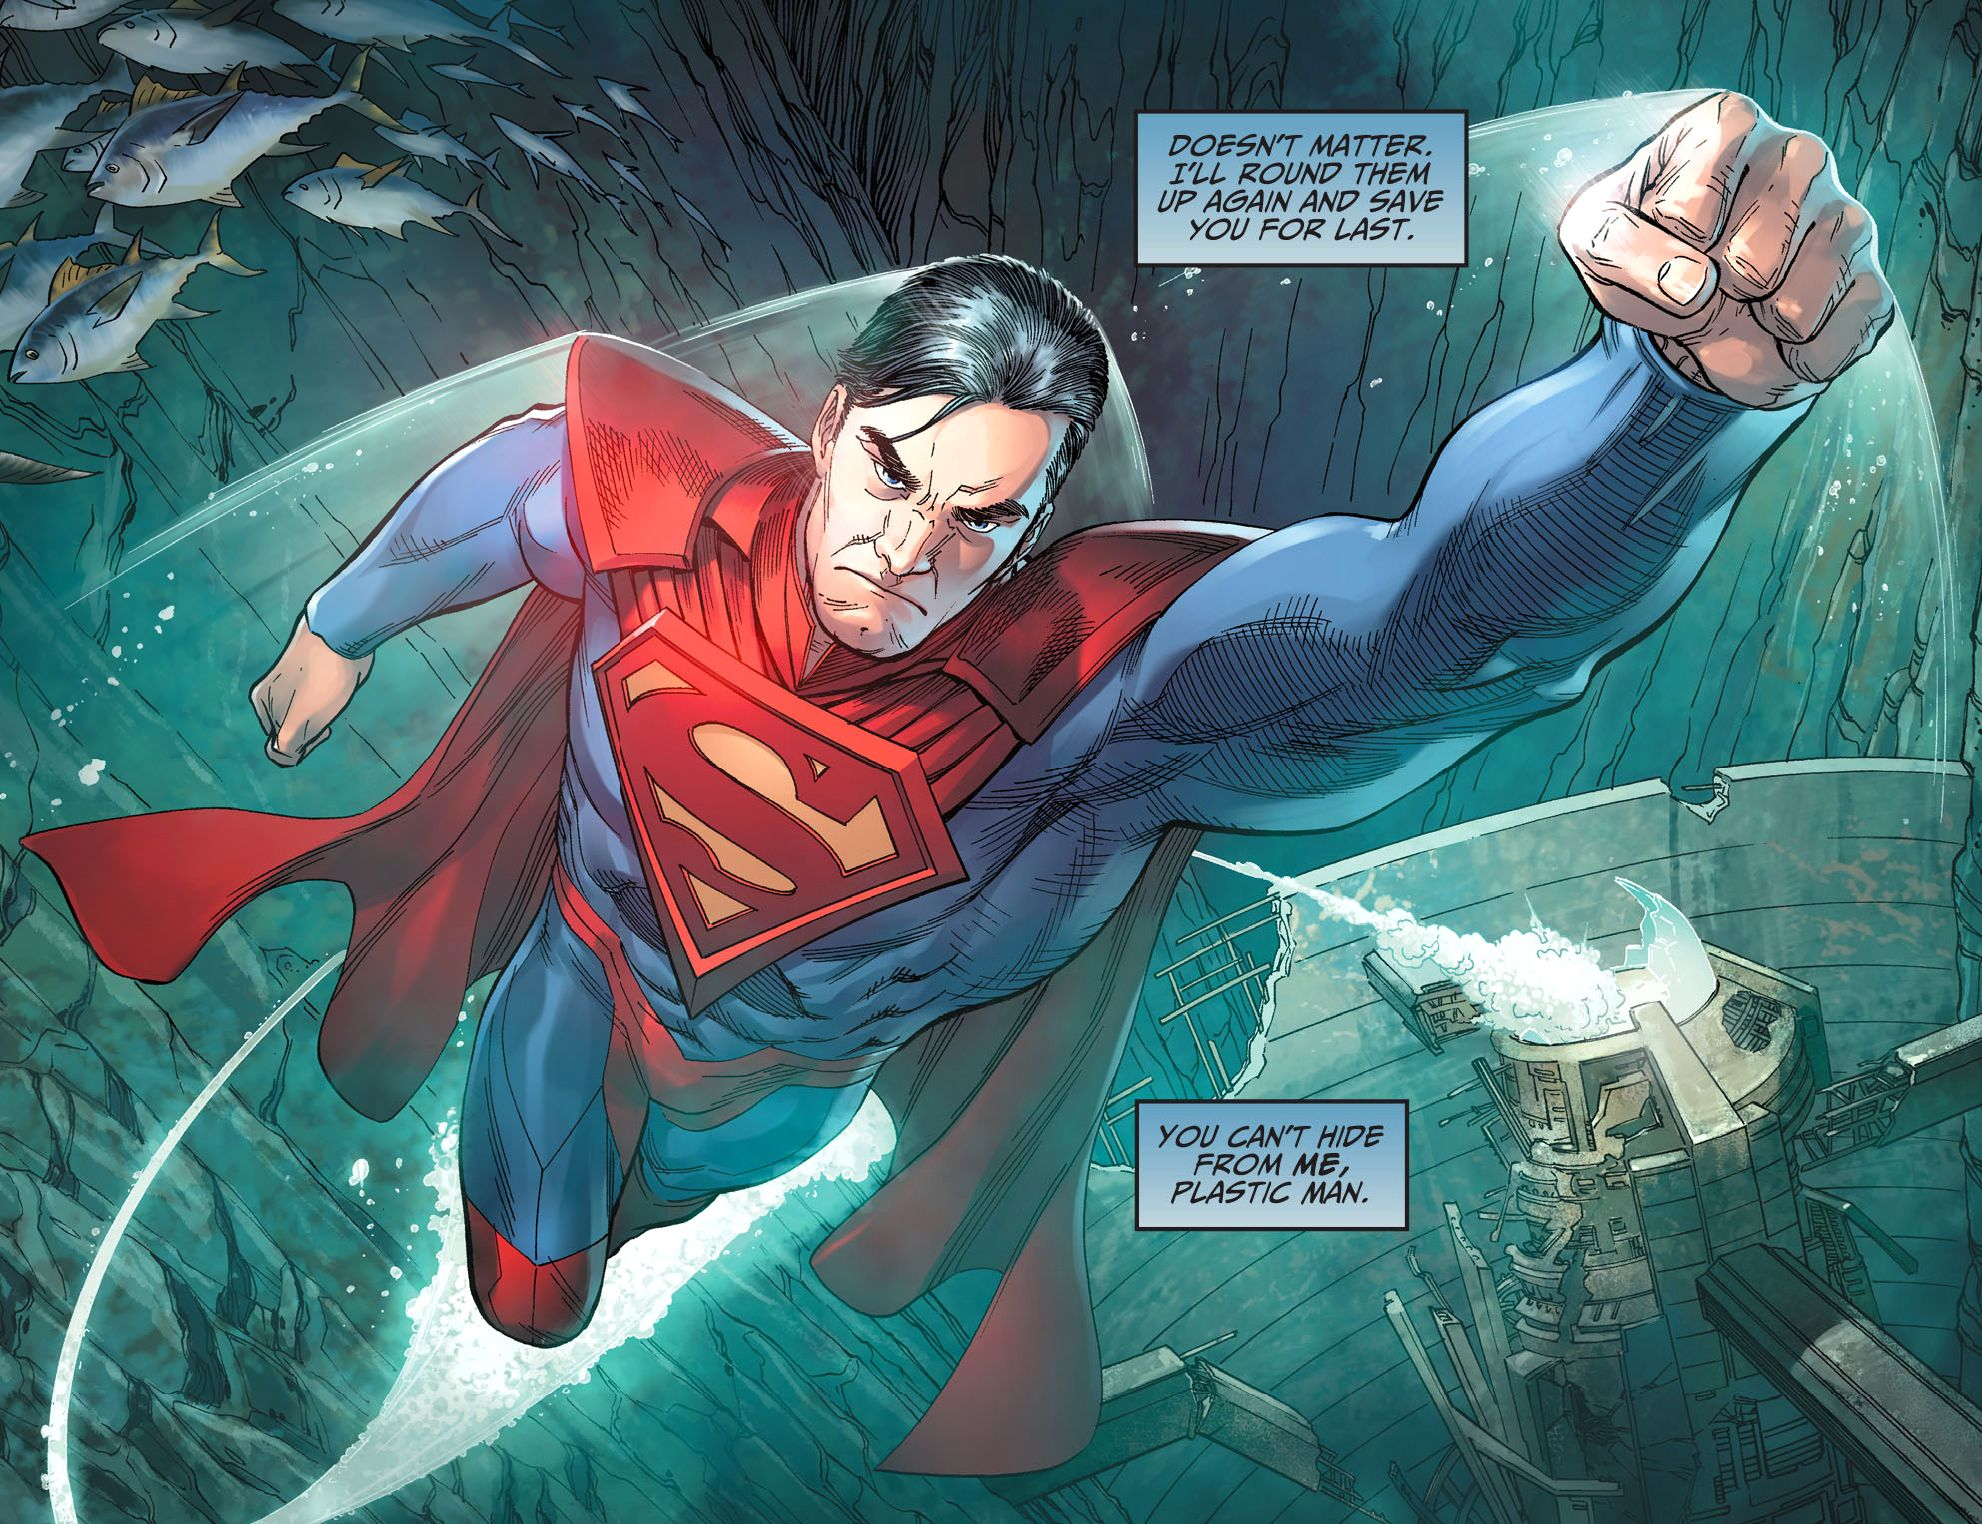 Superman (Injustice Year 5 1) Superman, Injustice comic